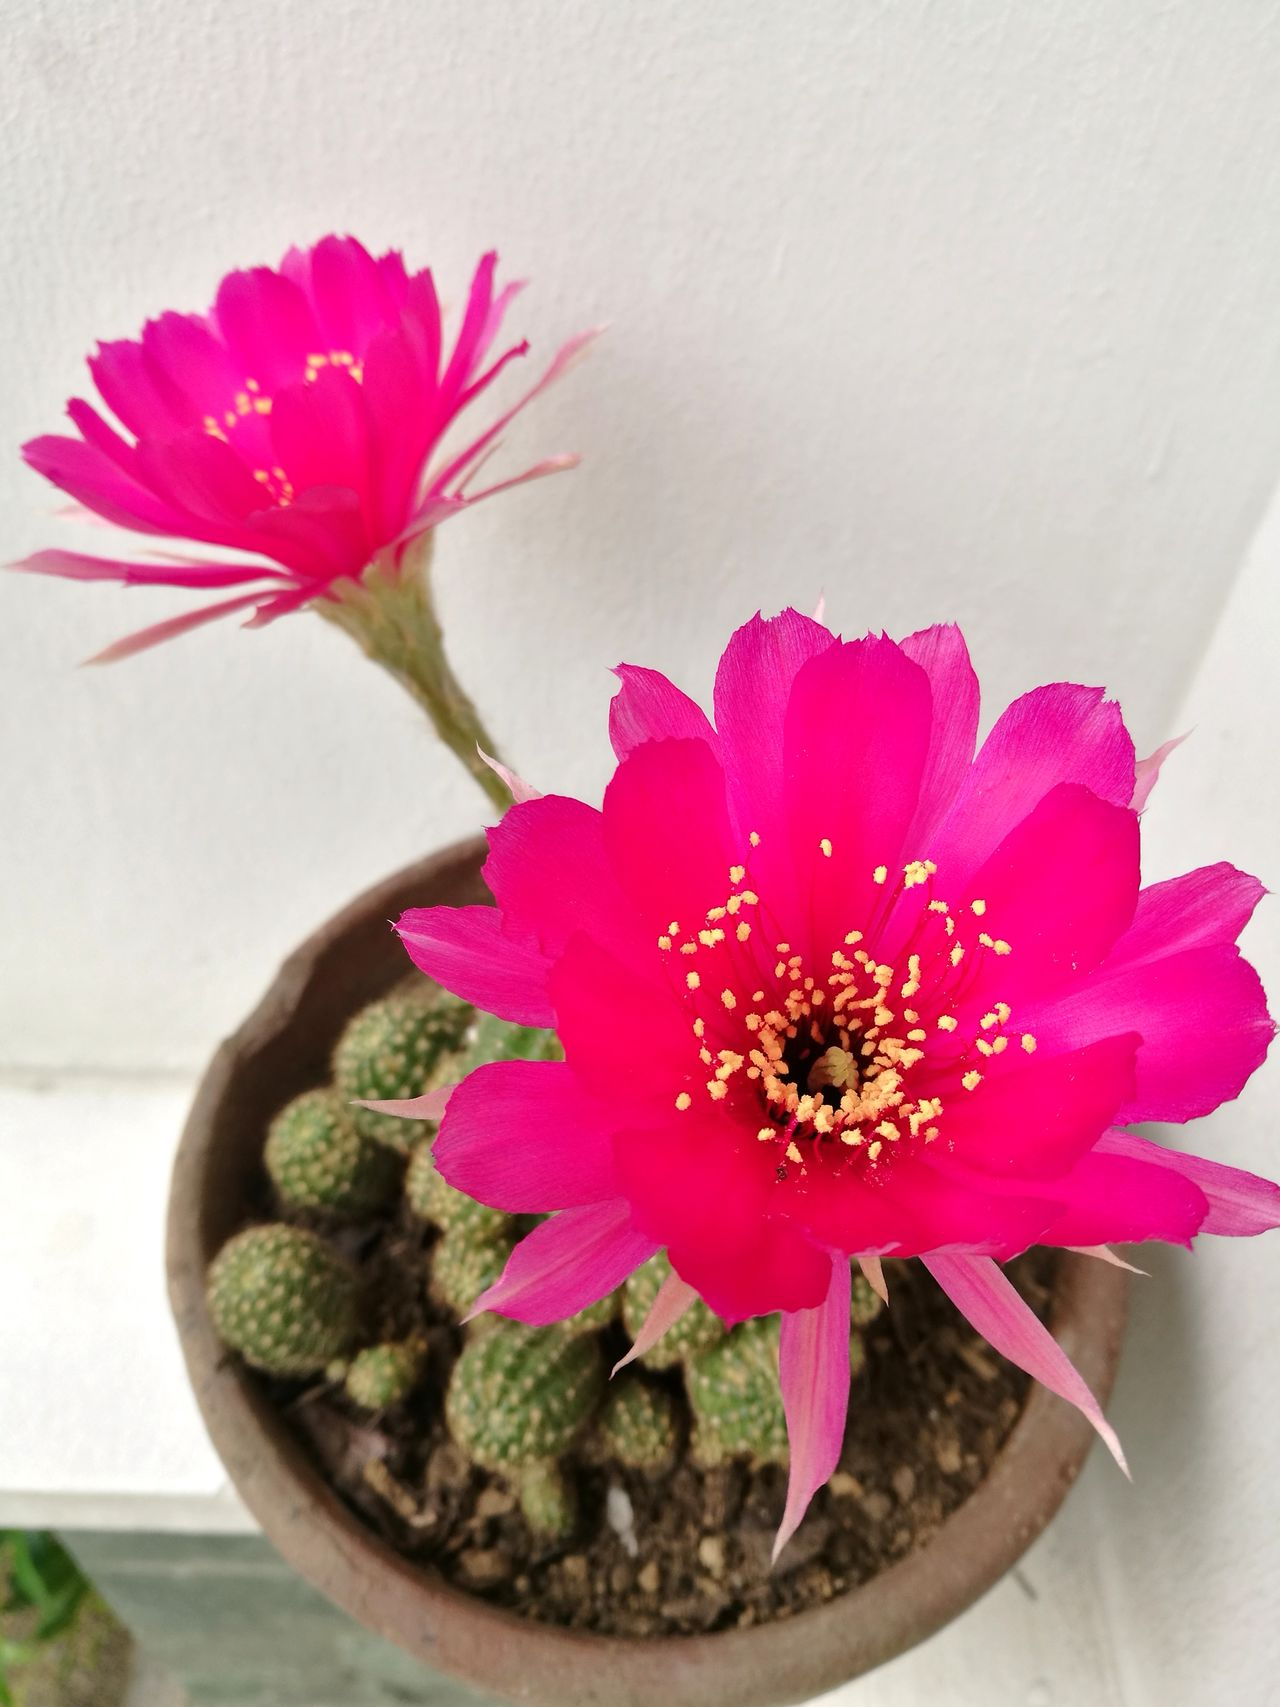 Flower Nature Plant Blossom Beauty In Nature Cactus Cactus Flower Cactusflower Flower Head Petal Fragility Red Close-up No People Day Freshness